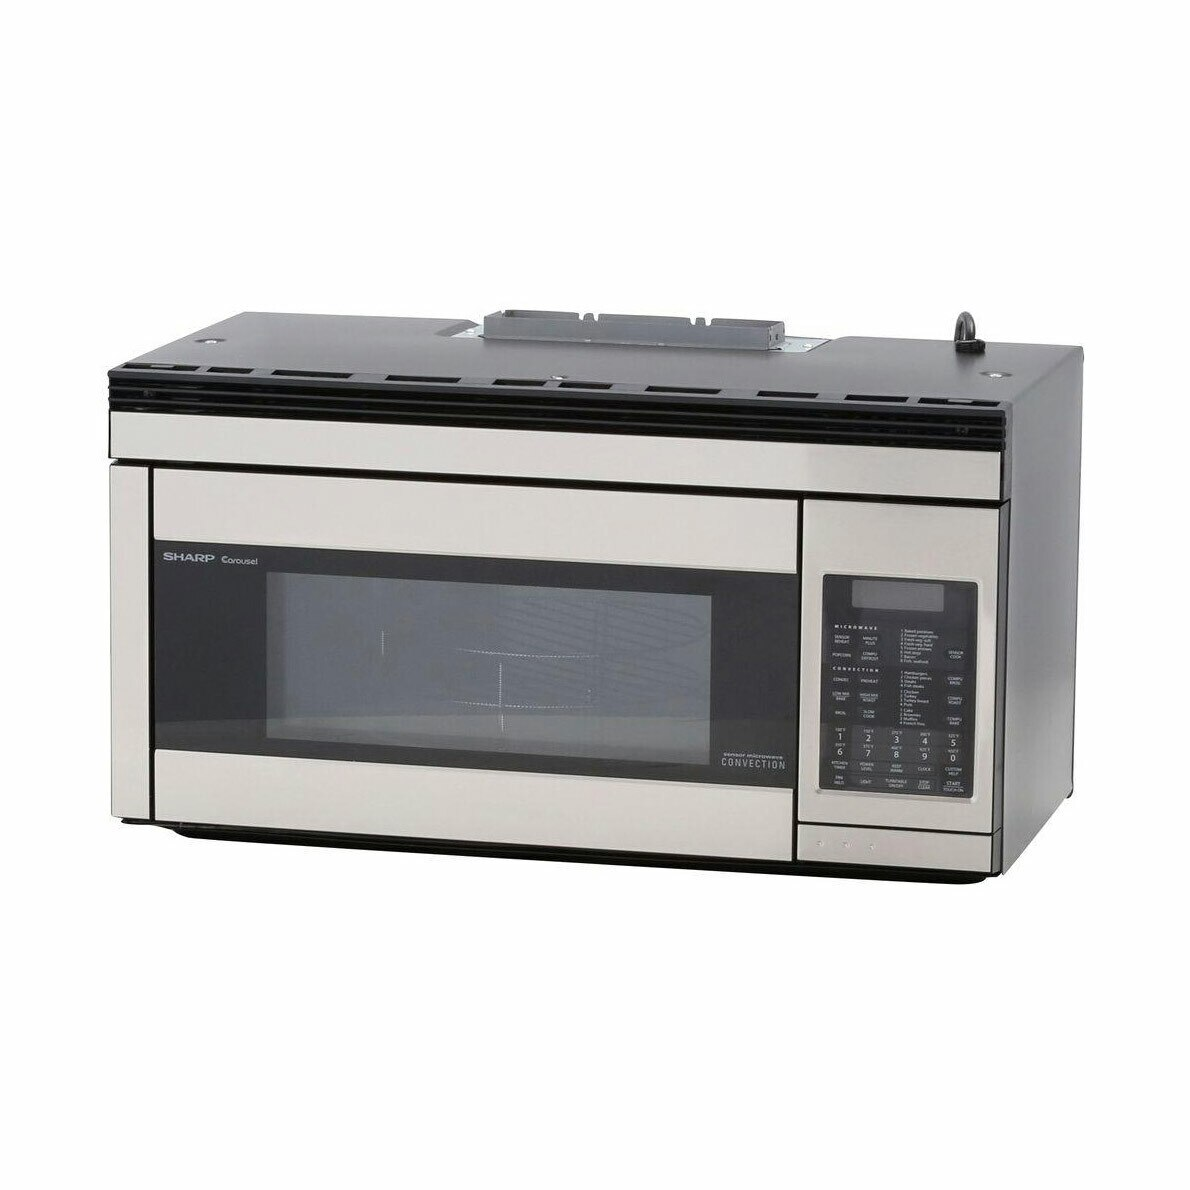 1.1 cu. ft. 850W Sharp Stainless Steel Over-the-Range Convection Microwave (R1874TY) – left angle view